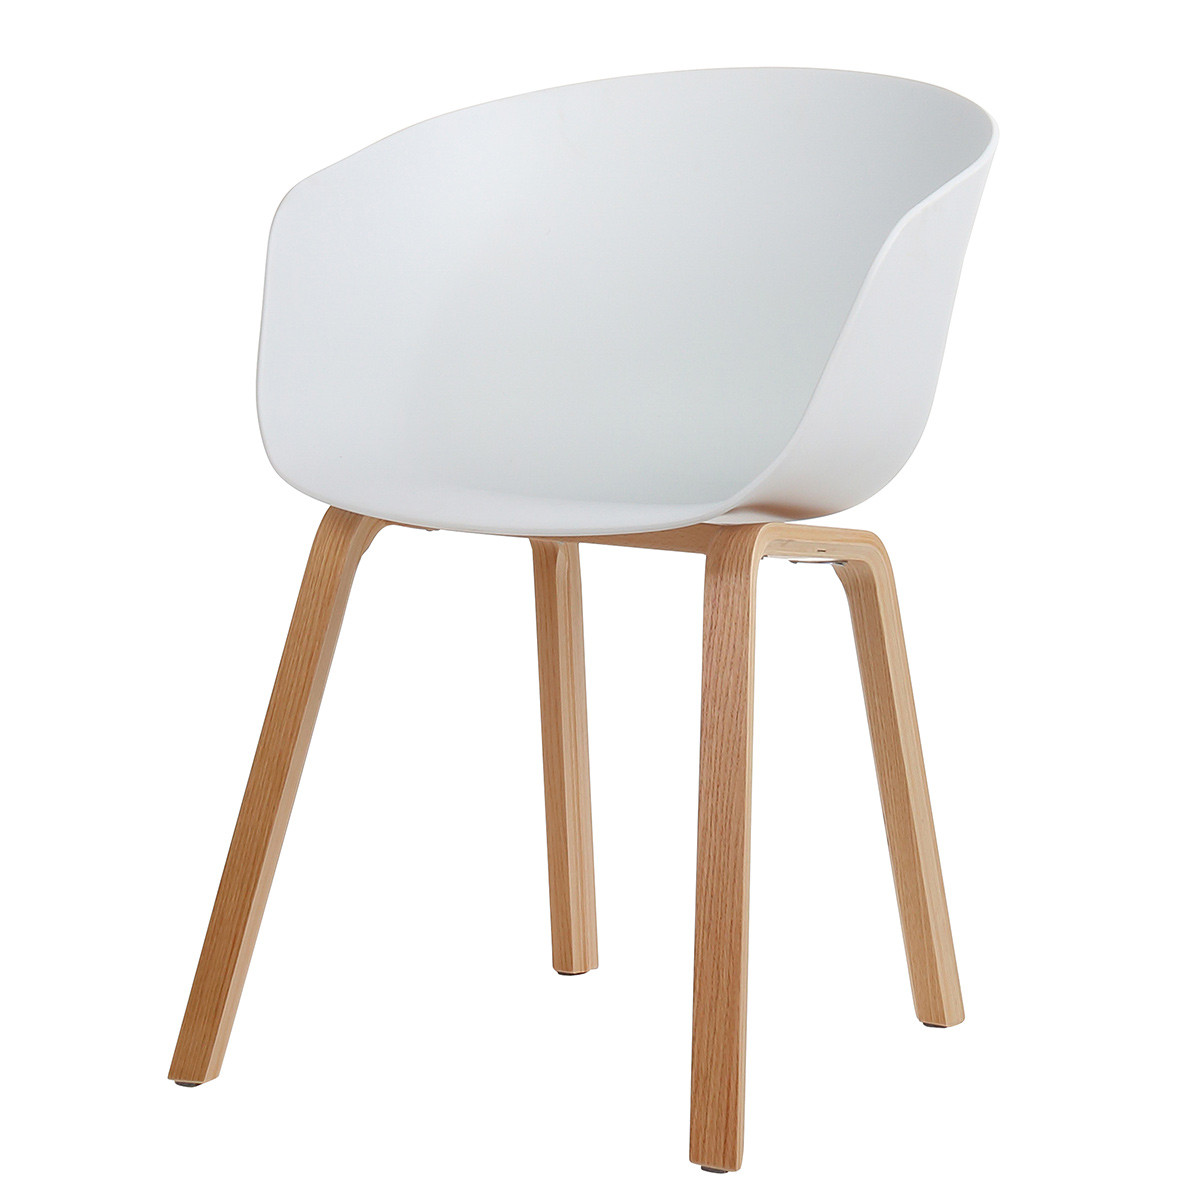 Danish mid century modern white side chair curved wood legs